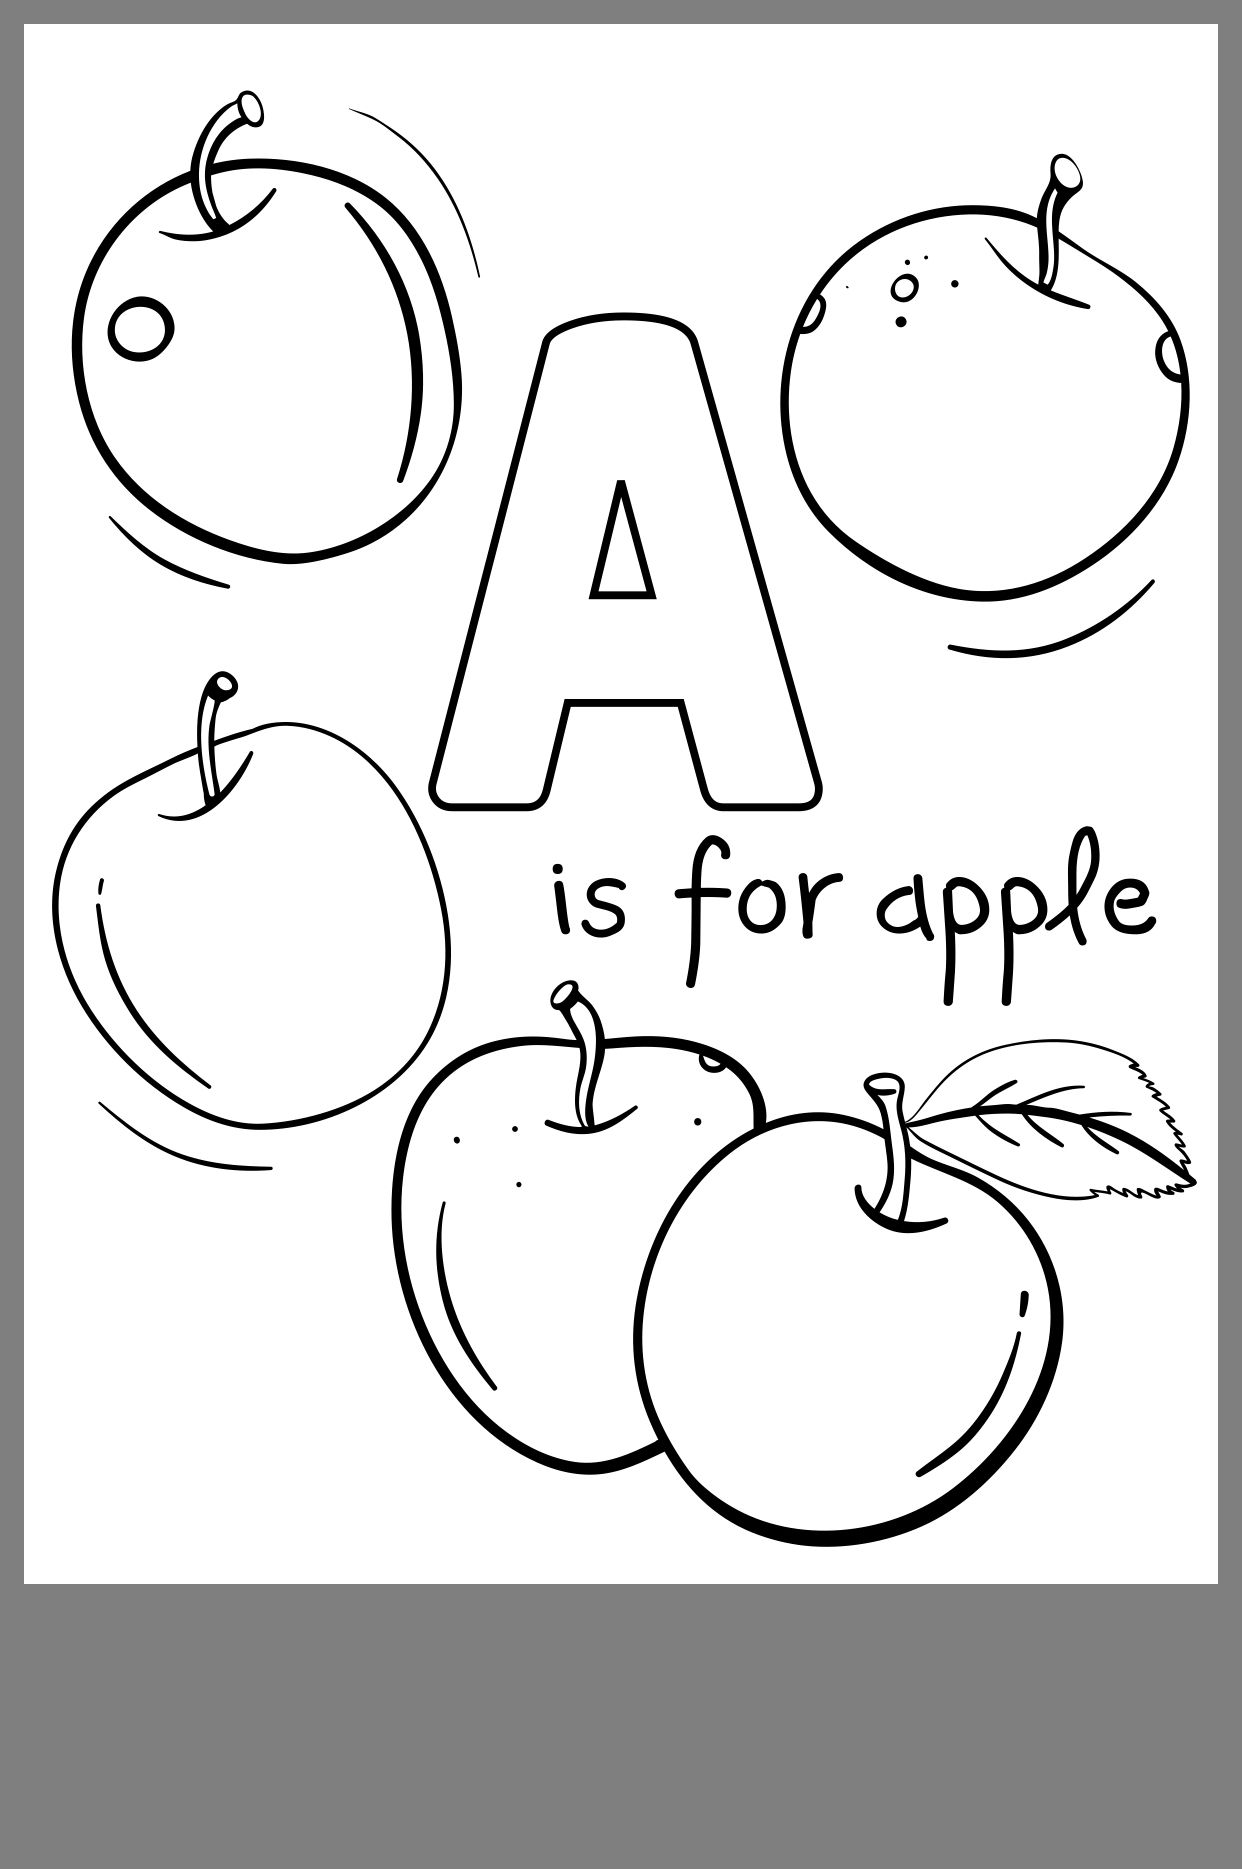 pin by meagan mccrillis on daycare fall pinterest apple 5 New Apple iPhone 6 apple coloring pages filing pdf